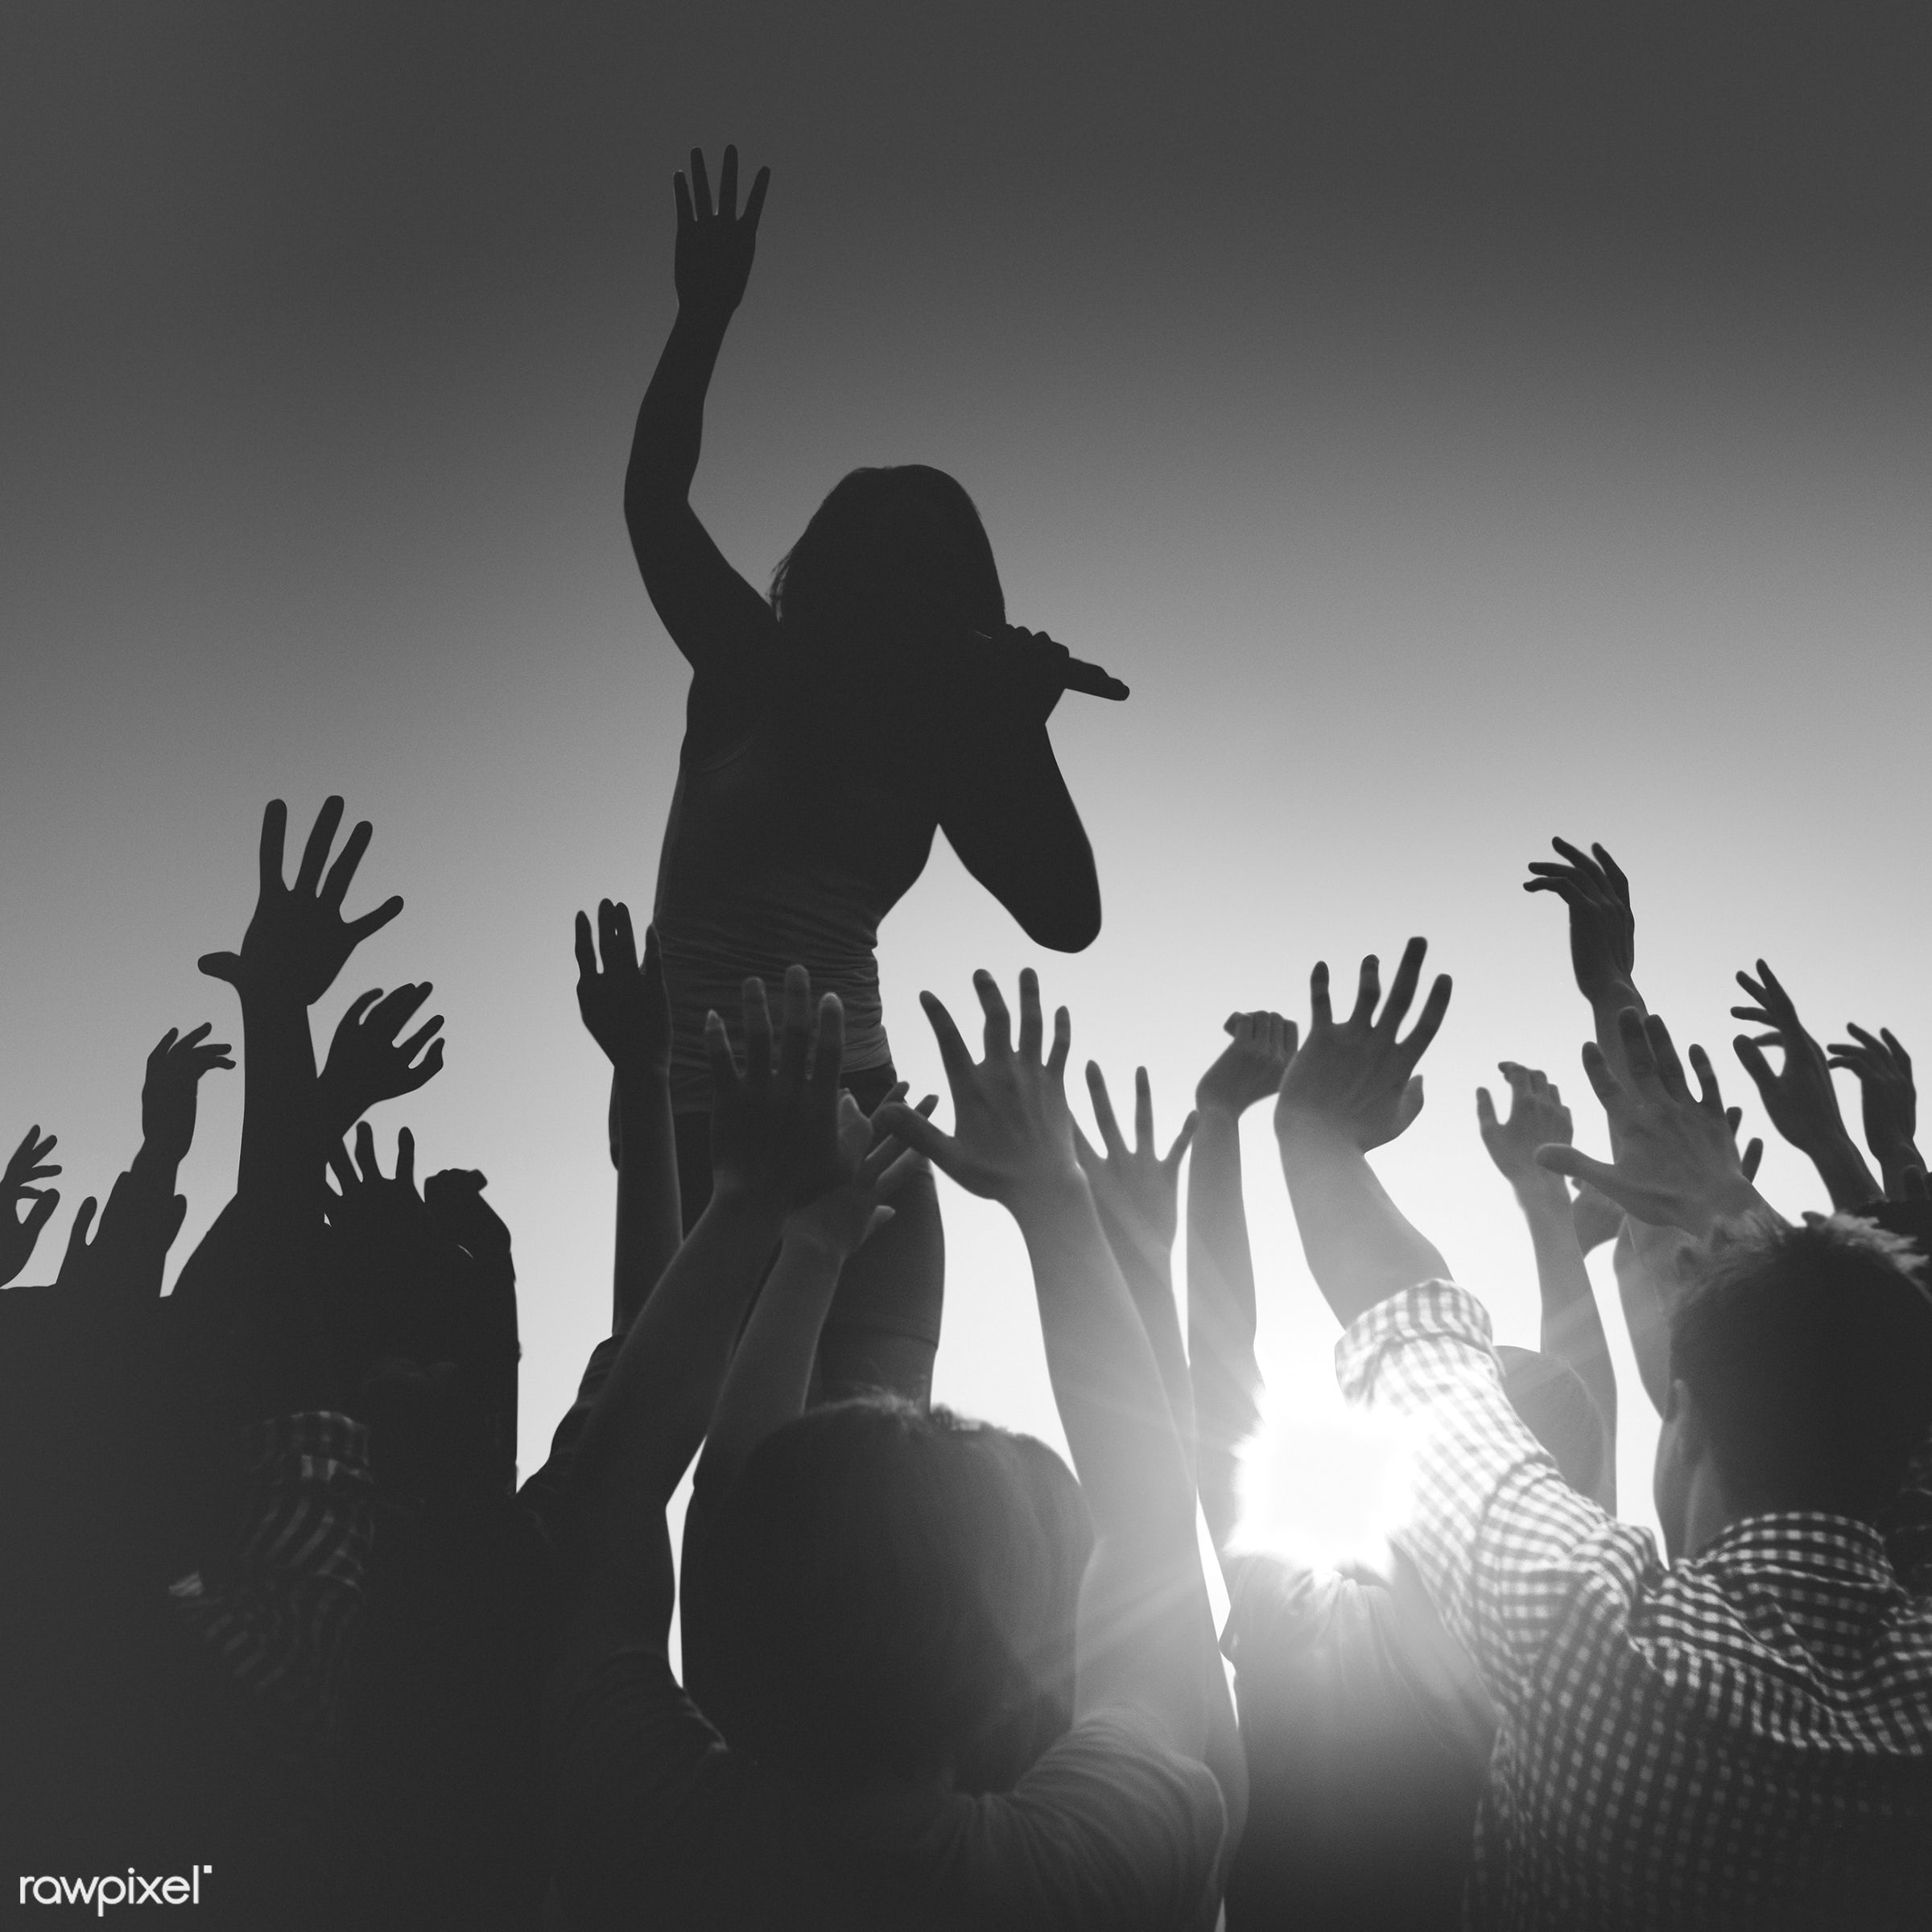 applauding, lifestyles, alcohol, arms outstretched, arms raised, audience, beach, beer, celebration, cheerful, community,...